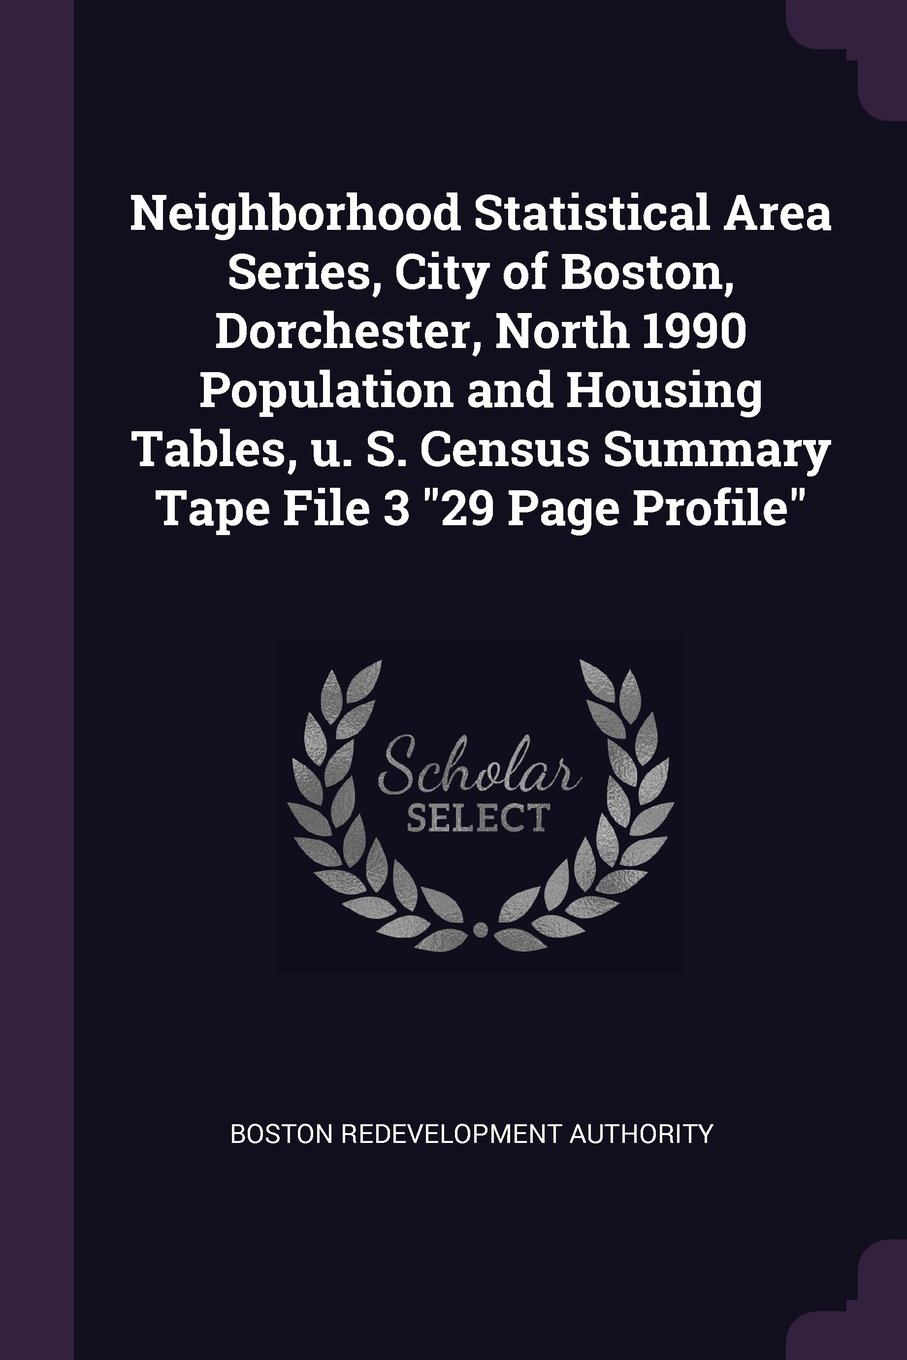 Download Neighborhood Statistical Area Series, City of Boston, Dorchester, North 1990 Population and Housing Tables, U. S. Census Summary Tape File 3 29 Page Profile pdf